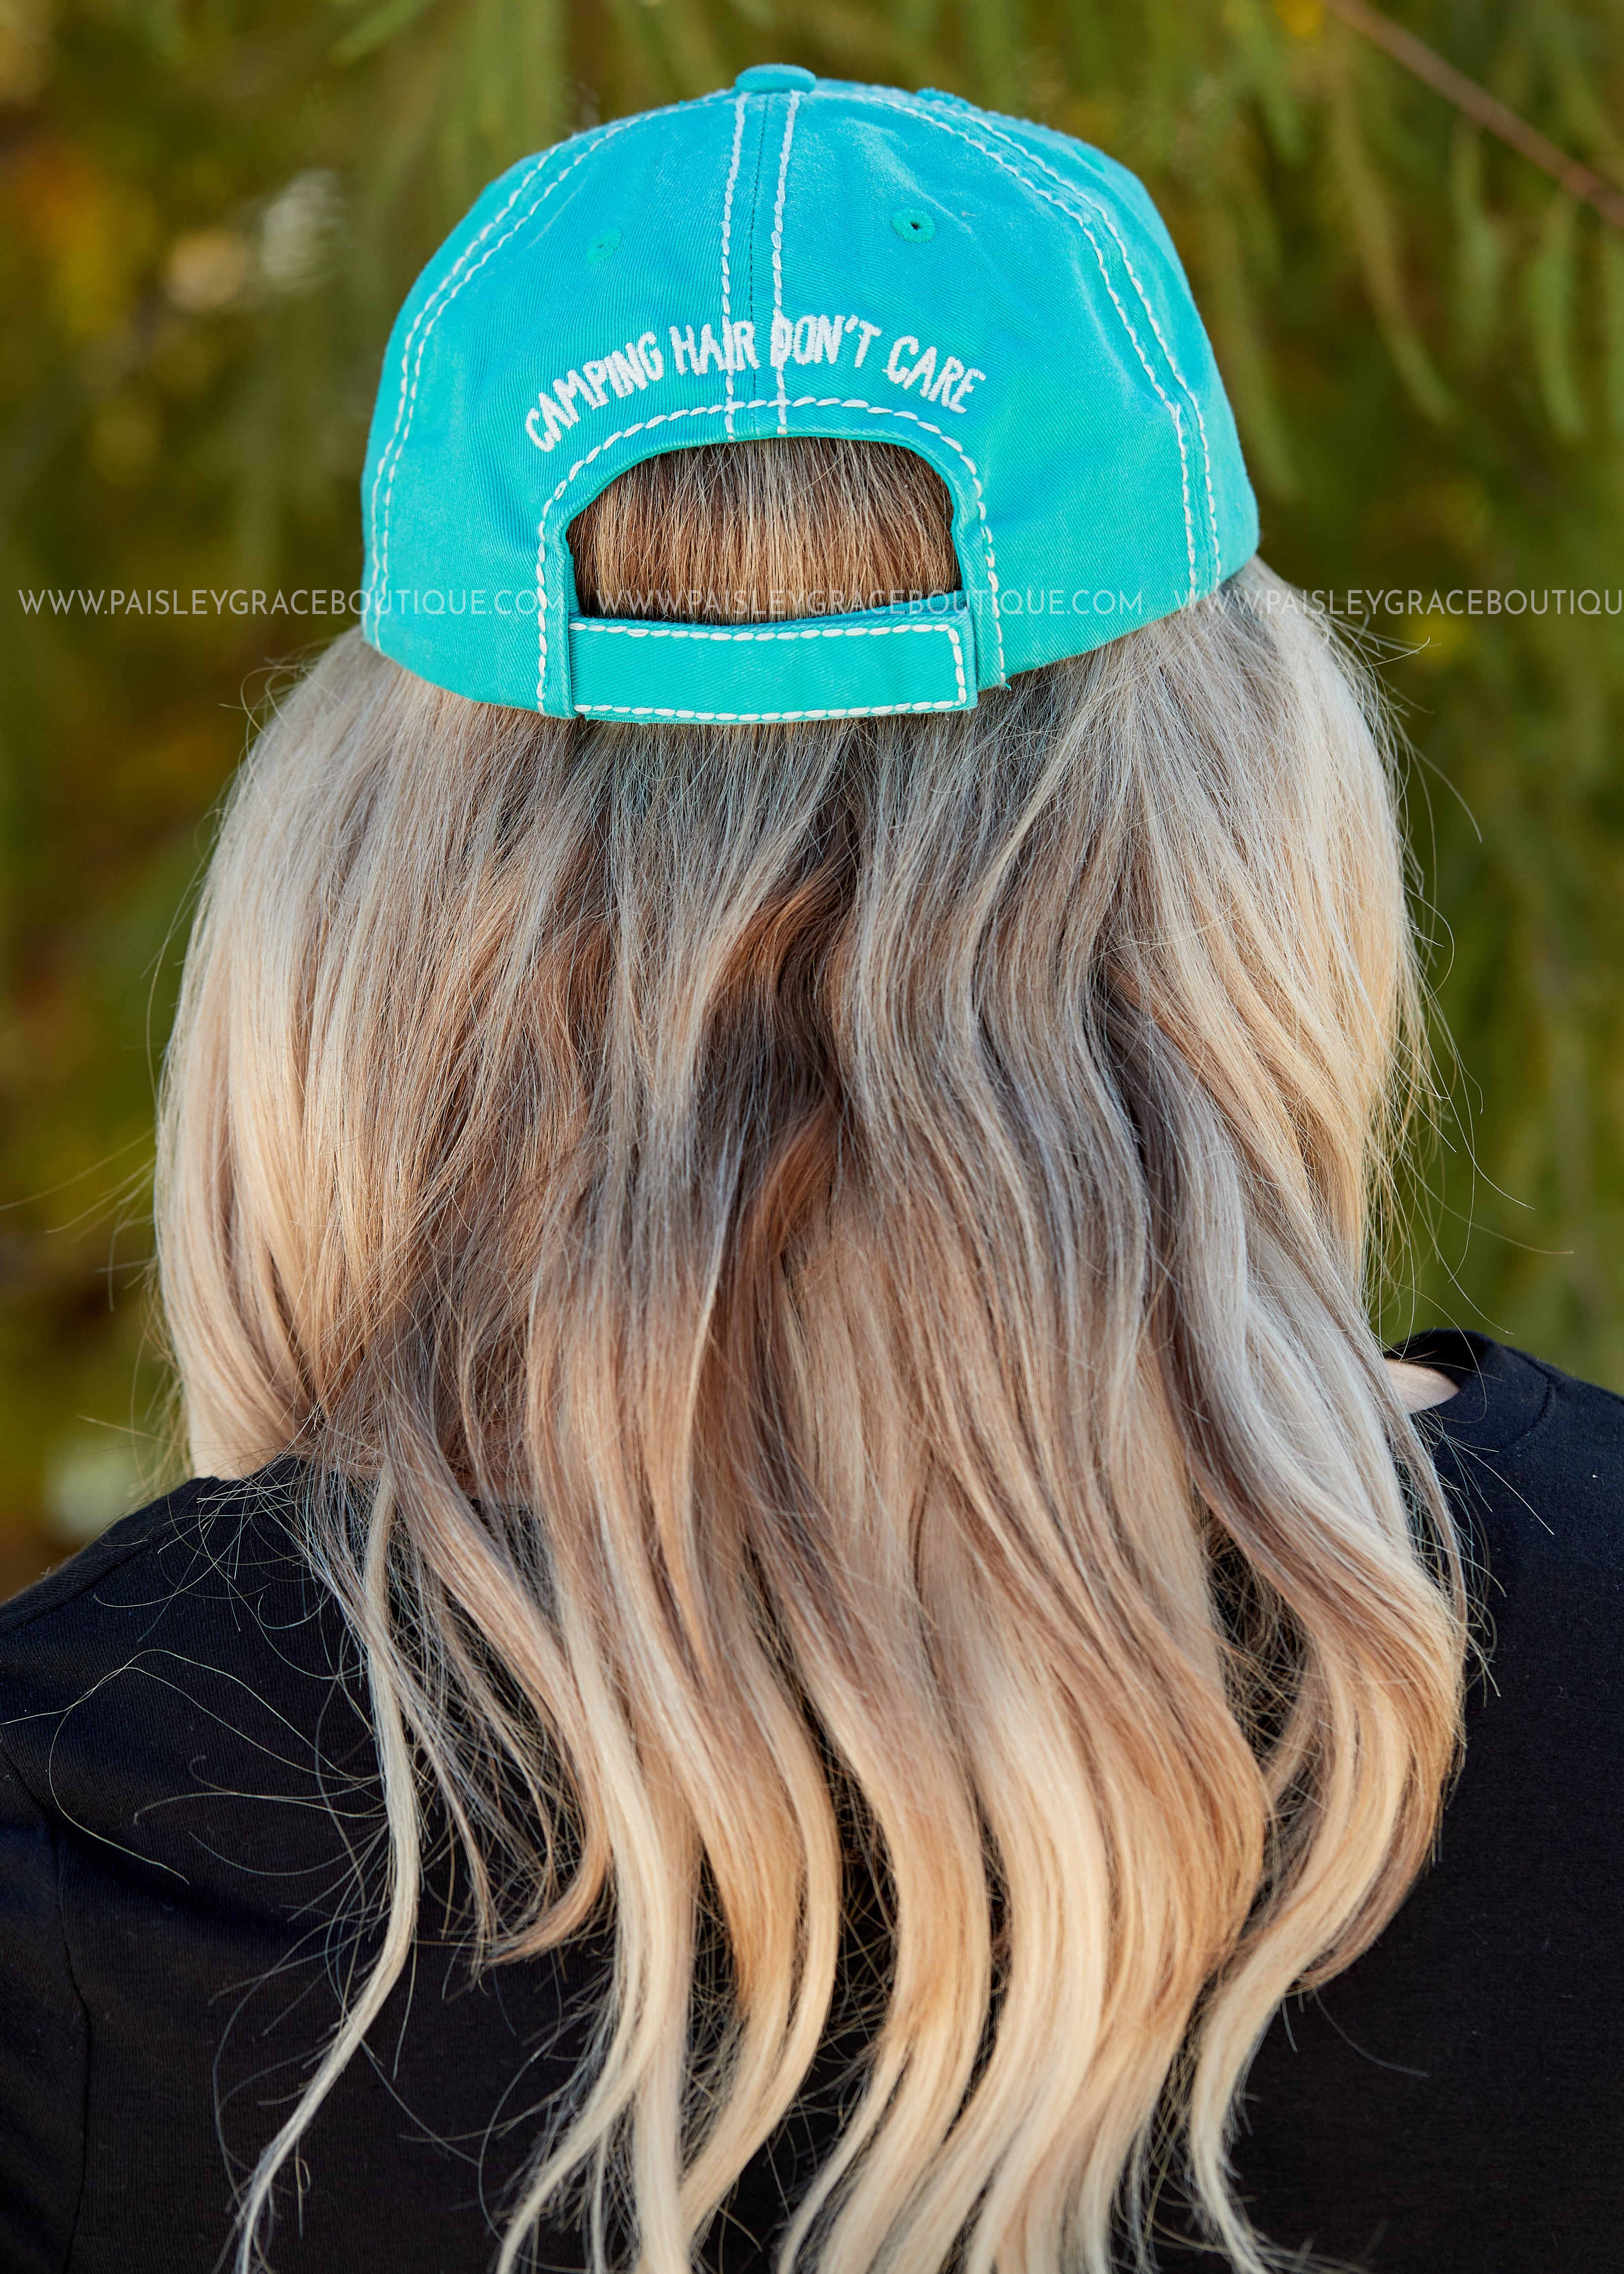 Camping Hair Don't Care Baseball Hat- MINT